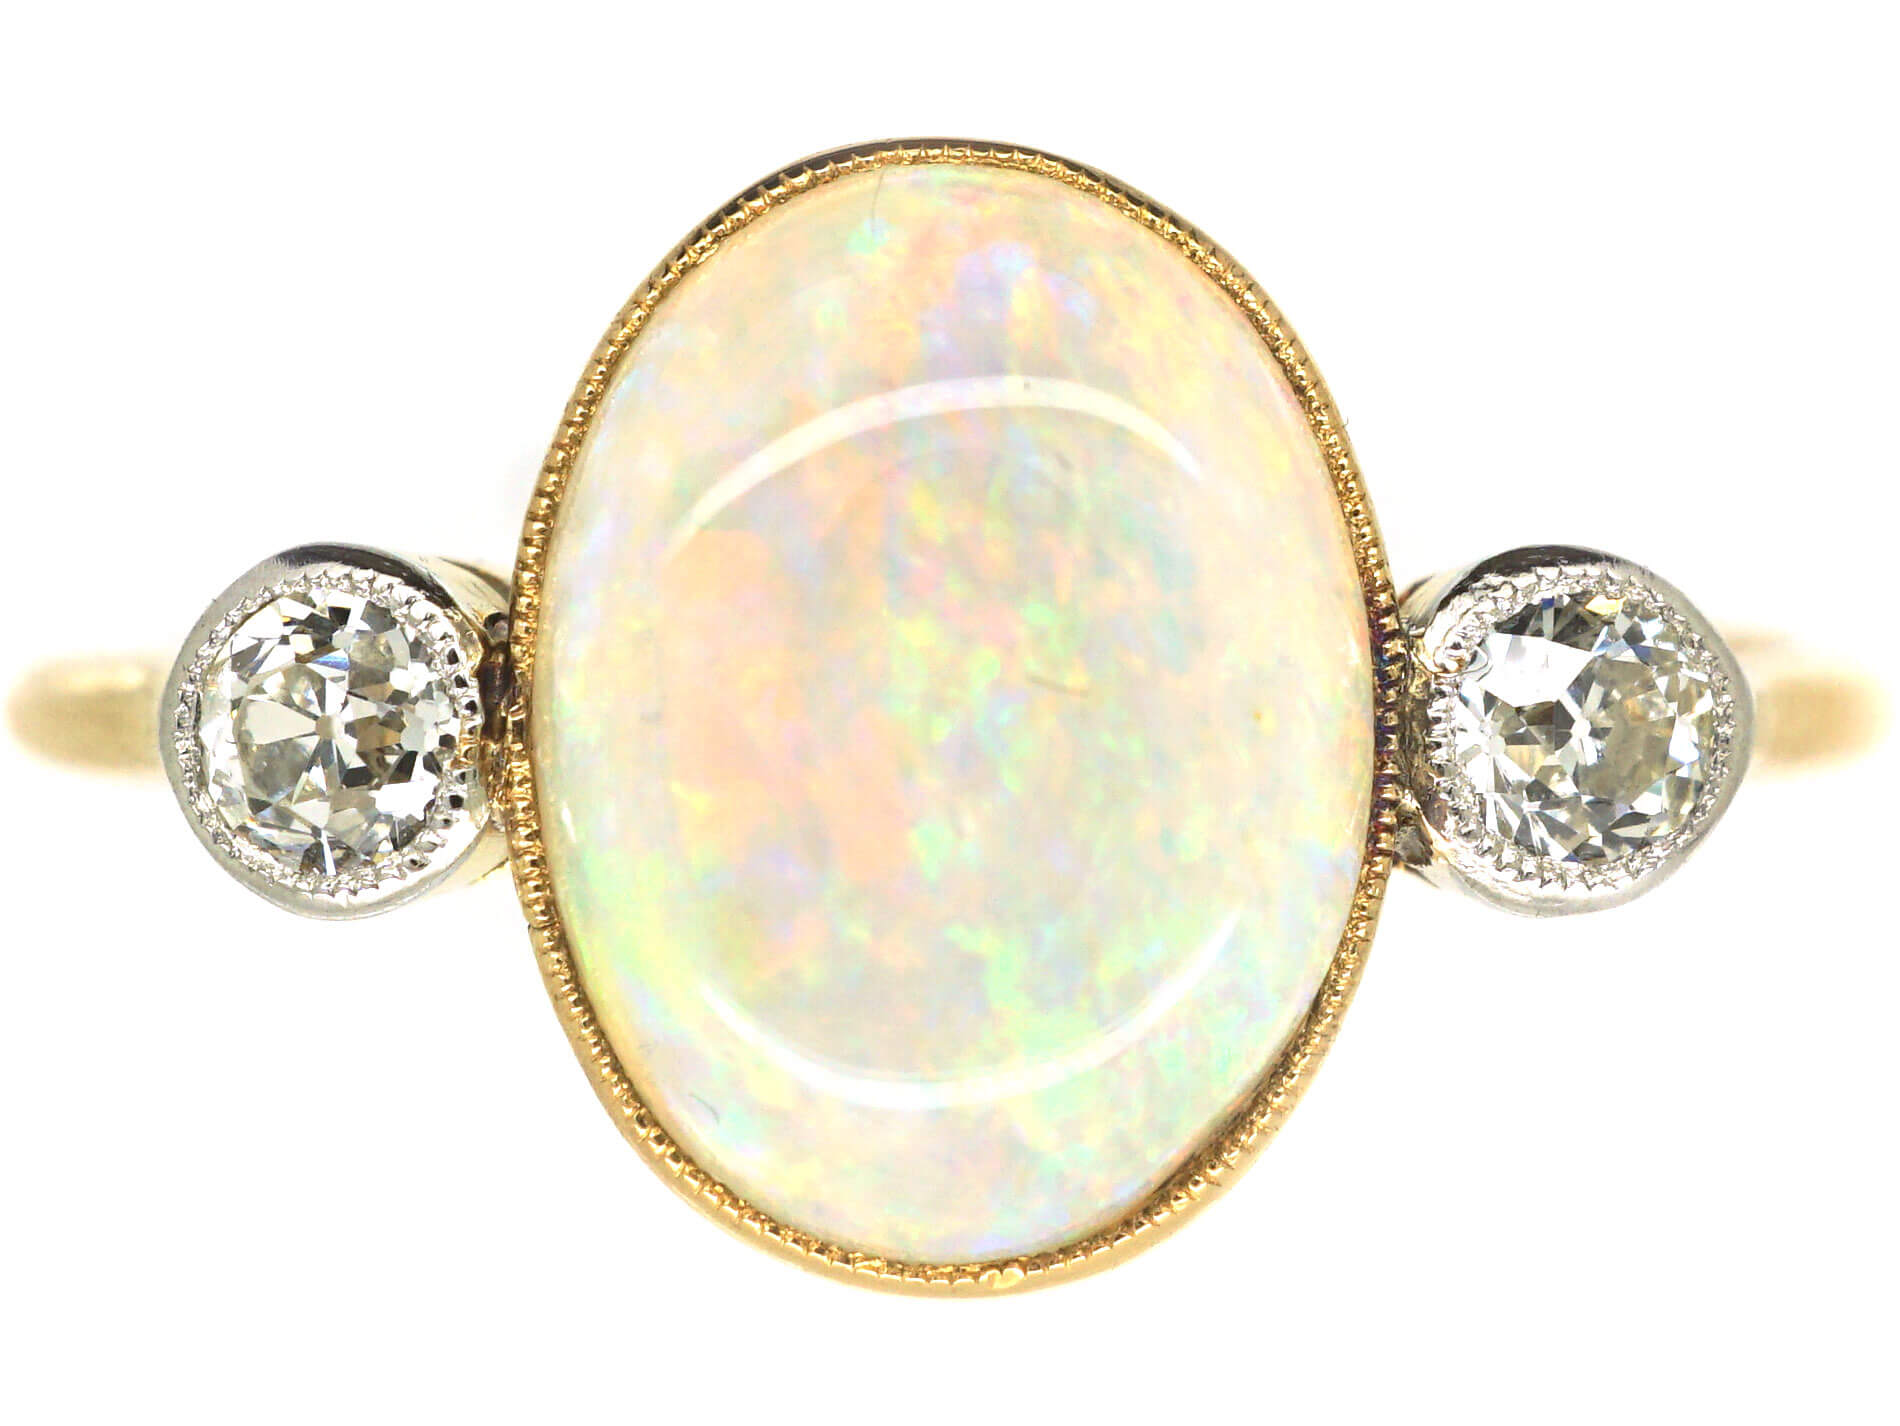 Edwardian 18ct Gold Opal & Diamond Ring by Charles Green & Sons